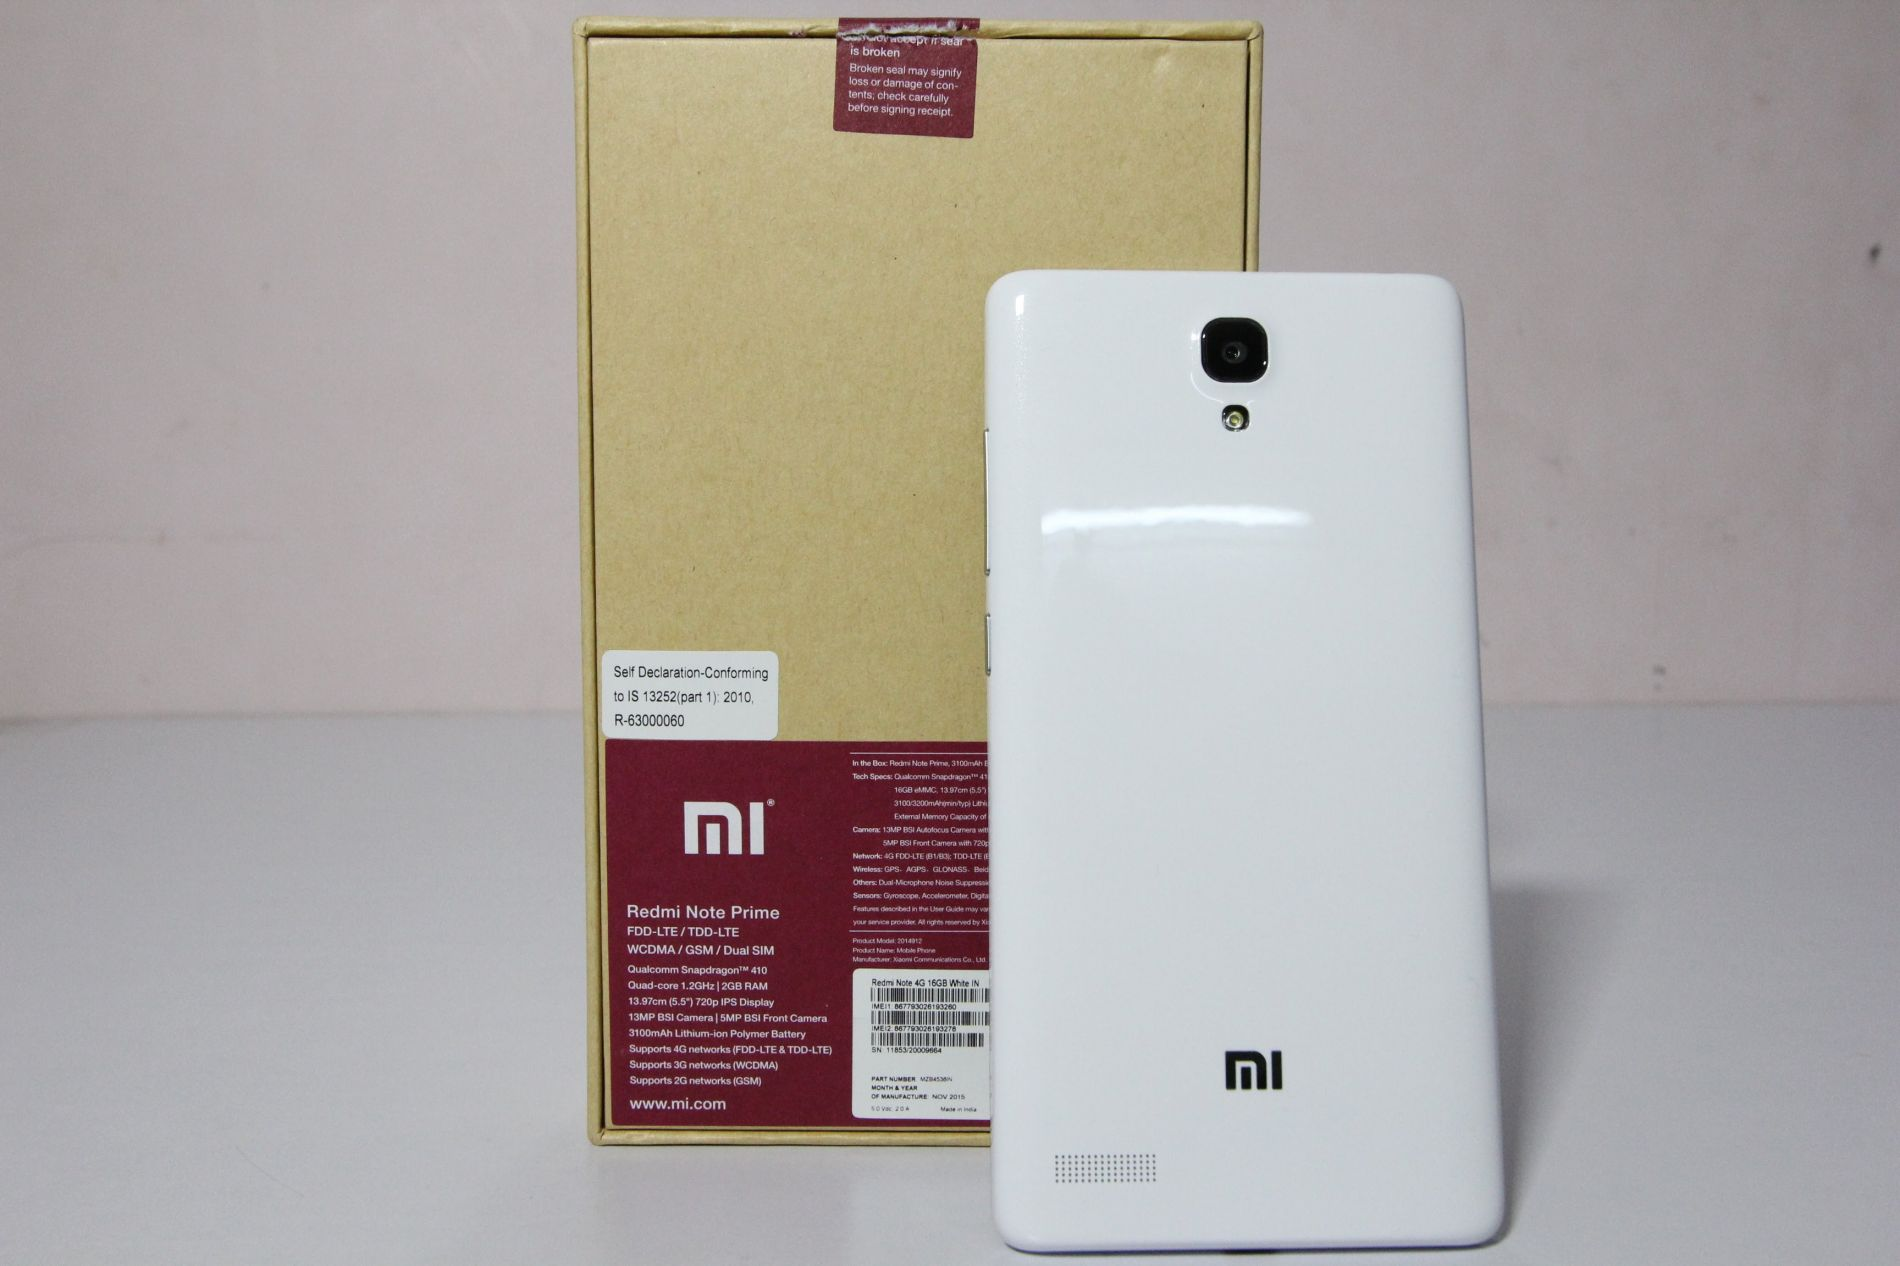 Xiaomi Redmi Note 4g Full Specifications With Price In Bangladesh 3g White Prime